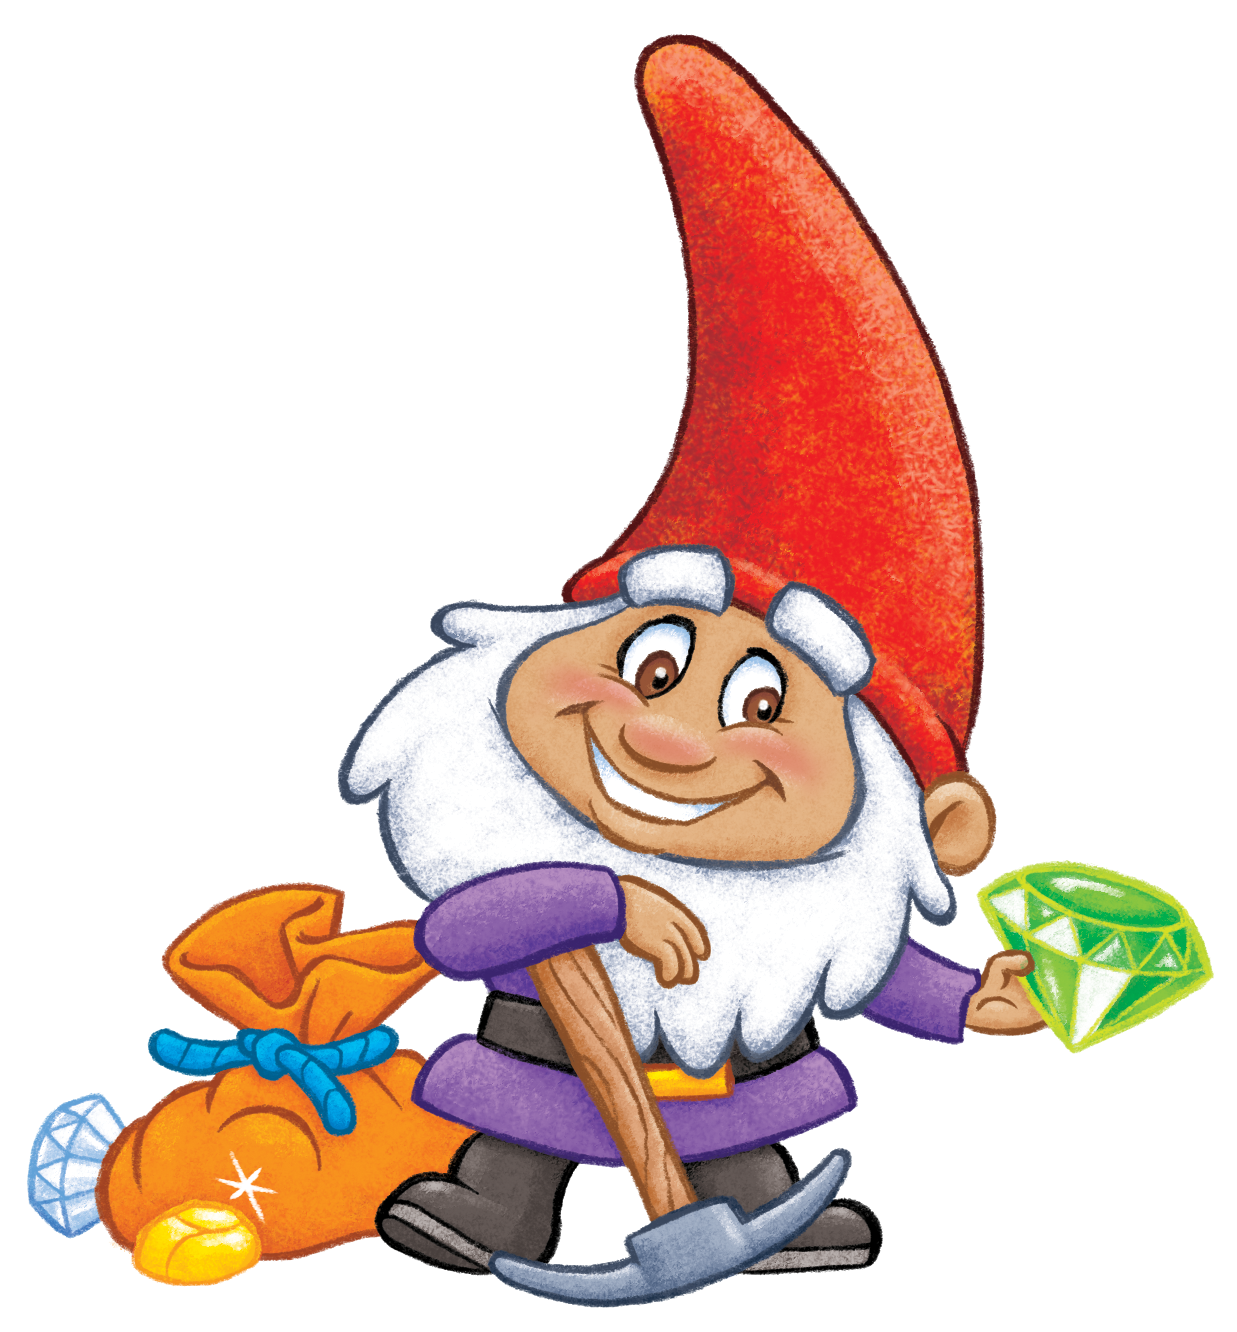 Smiling gnome holding a jewel treasure from GNOMES vs TROLLS™ triangle-shaped card game by TREND.